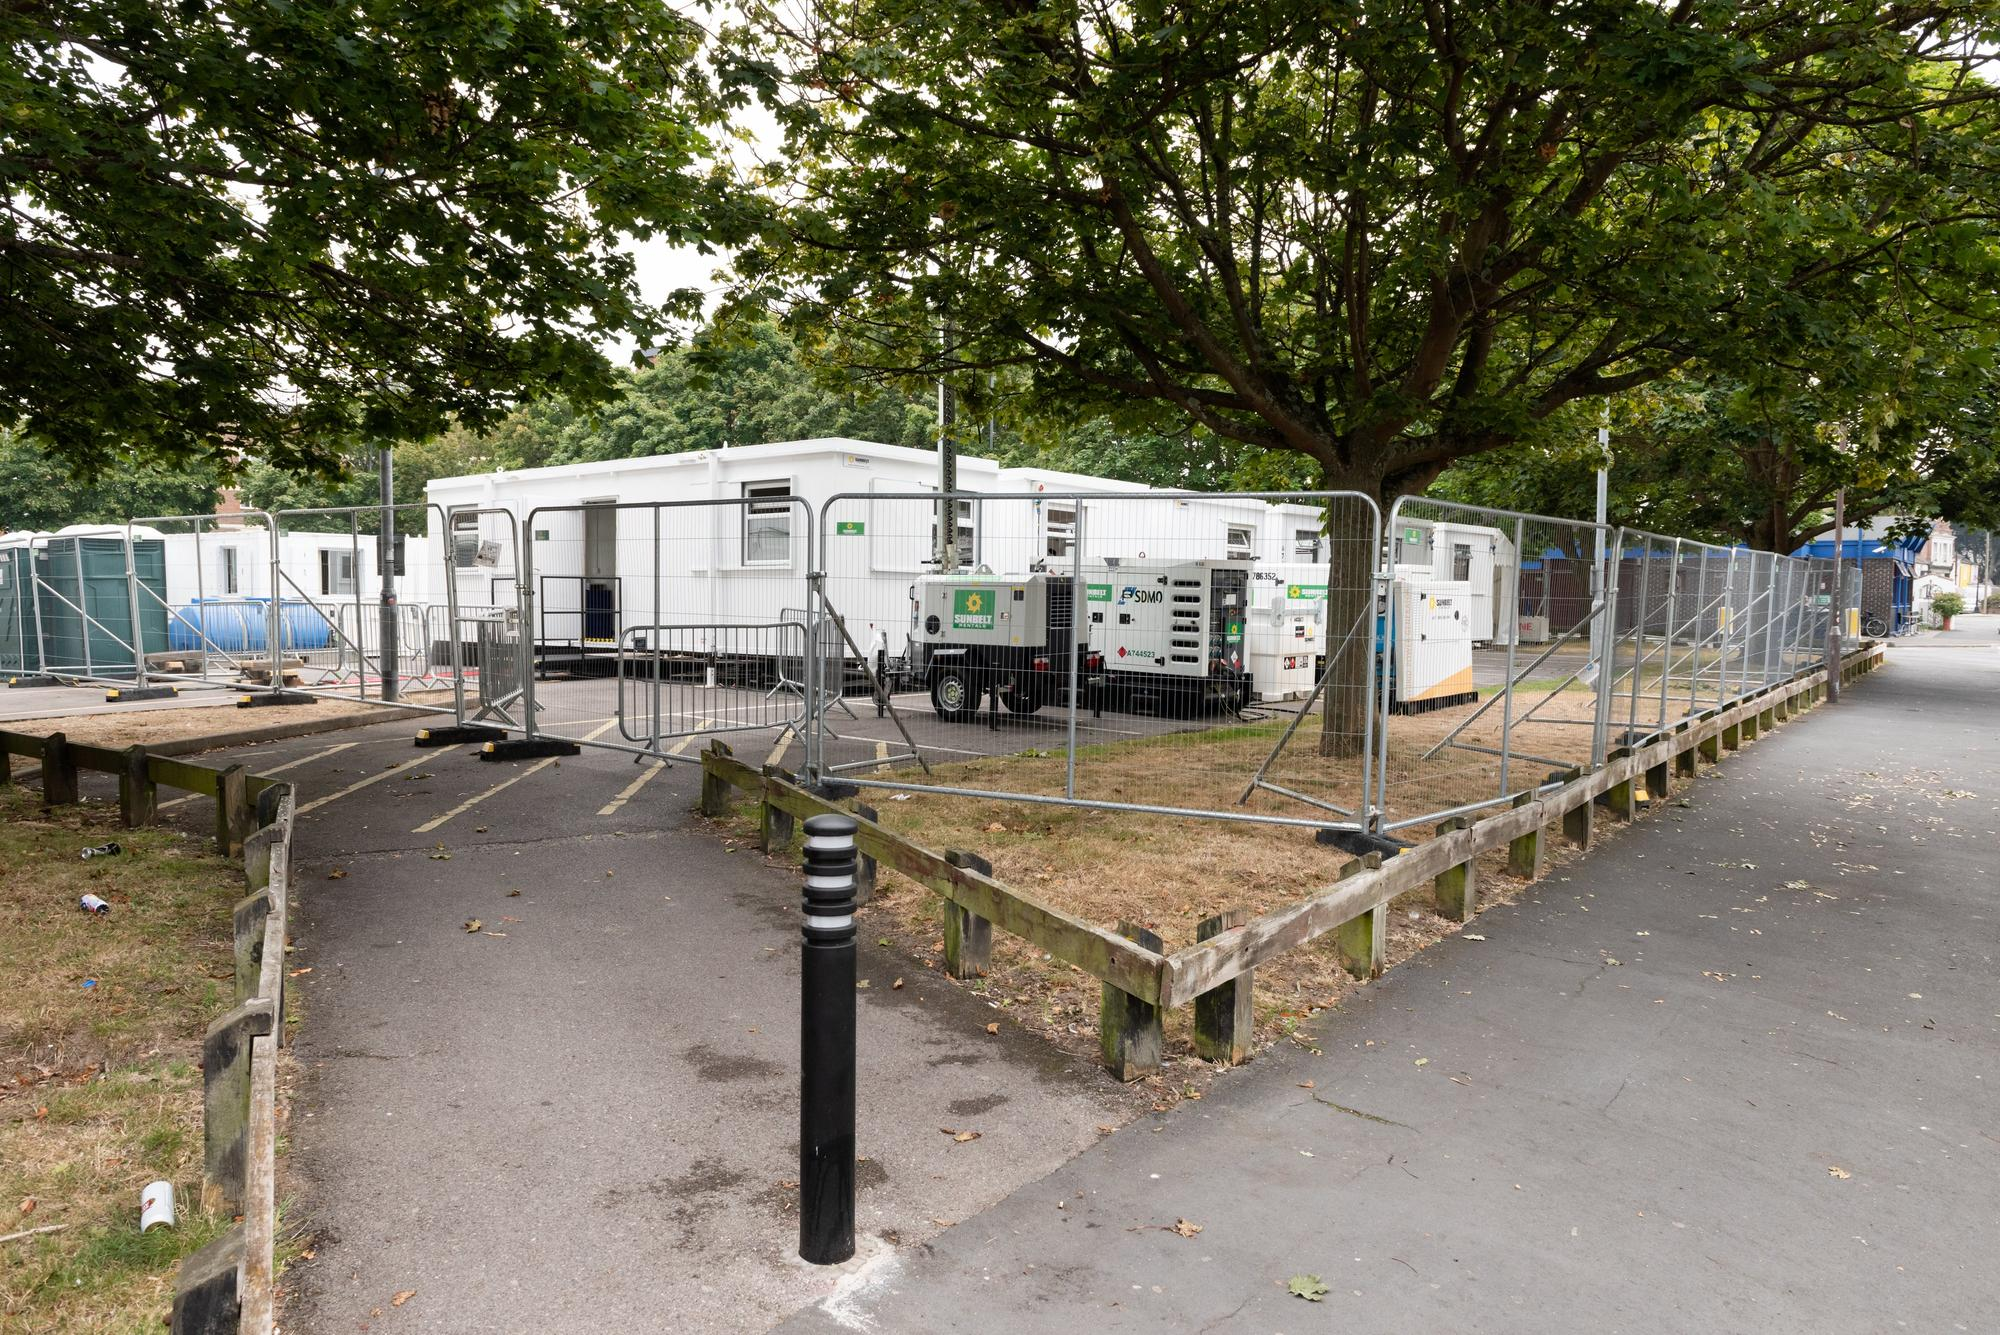 University of Portsmouth is country's first to set up a Covid-19 test site for staff, students and the community